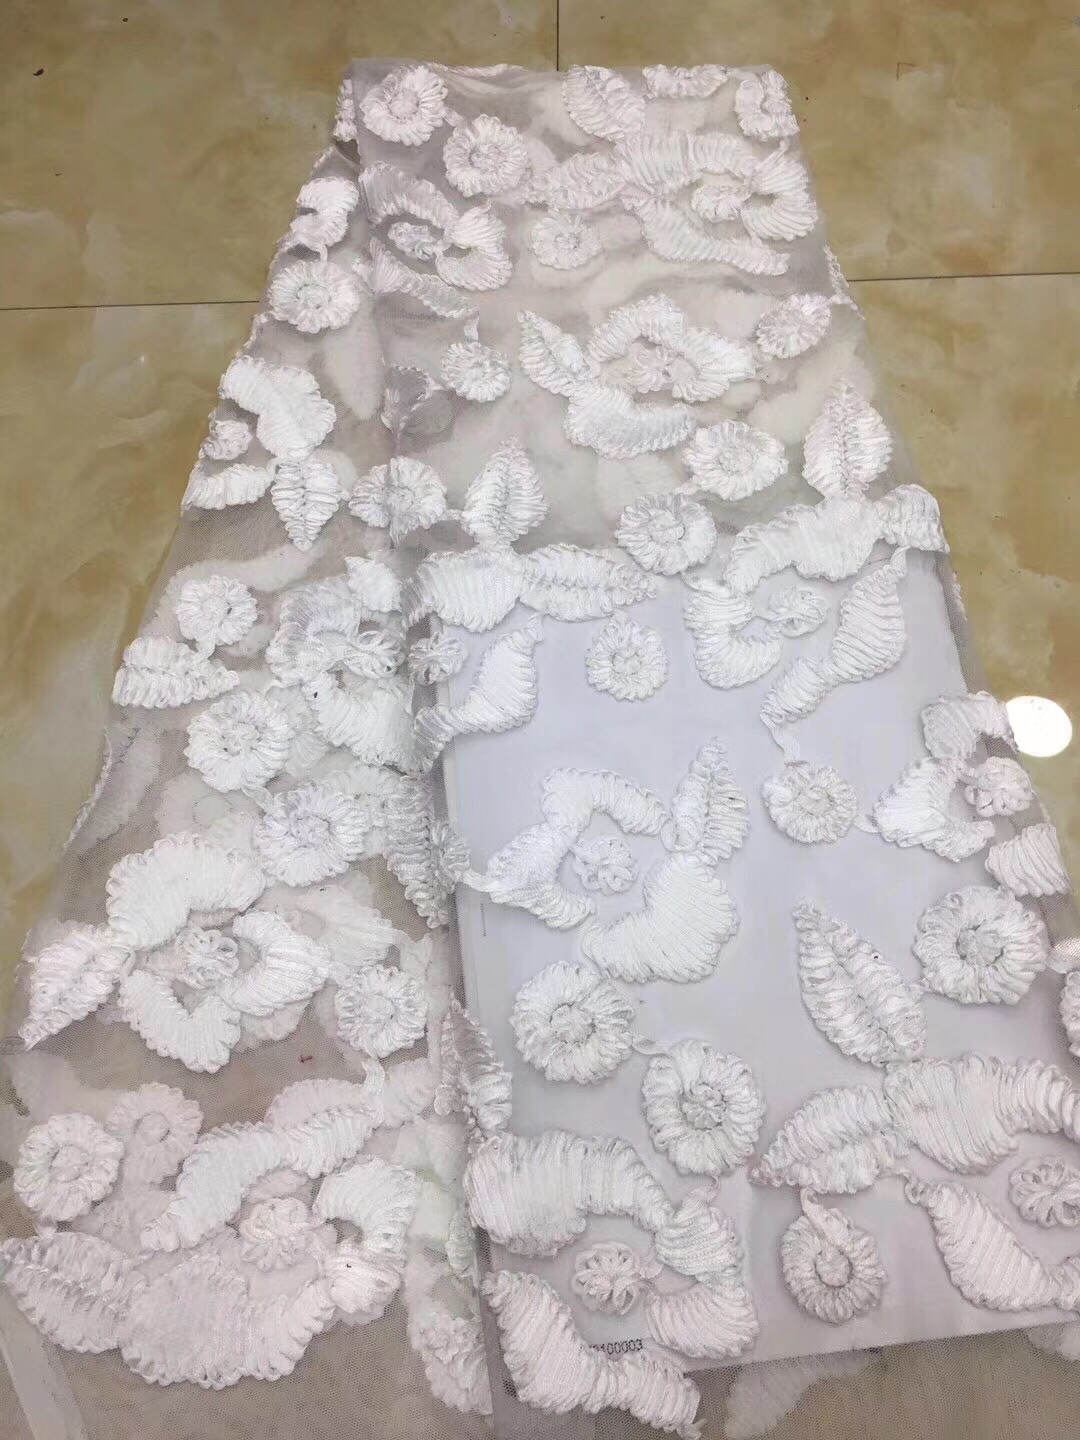 2019 French net lace White color Nigerian lace fabrics, African embroidered tulle lace fabrics for wedding dress FJ28221-in Lace from Home & Garden    1